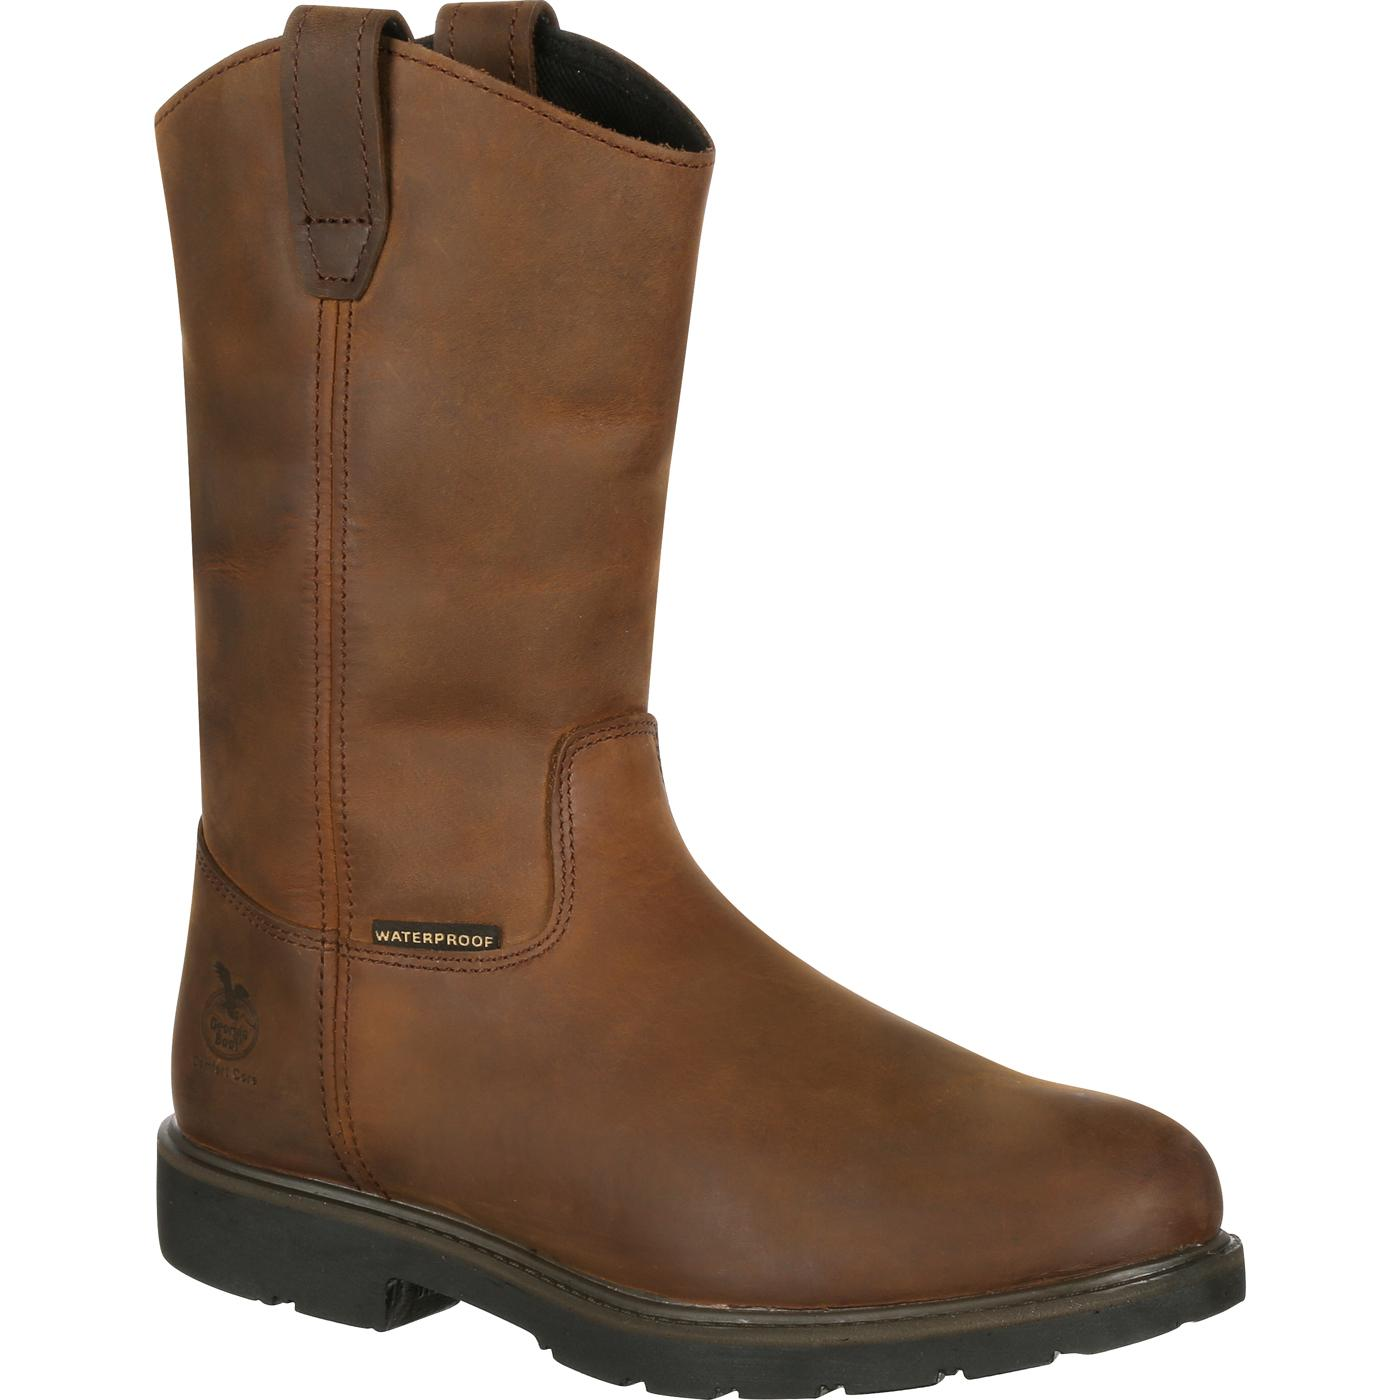 "Georgia GB00085 11"" Suspension System Waterproof Pull On Wellington Work Boots"